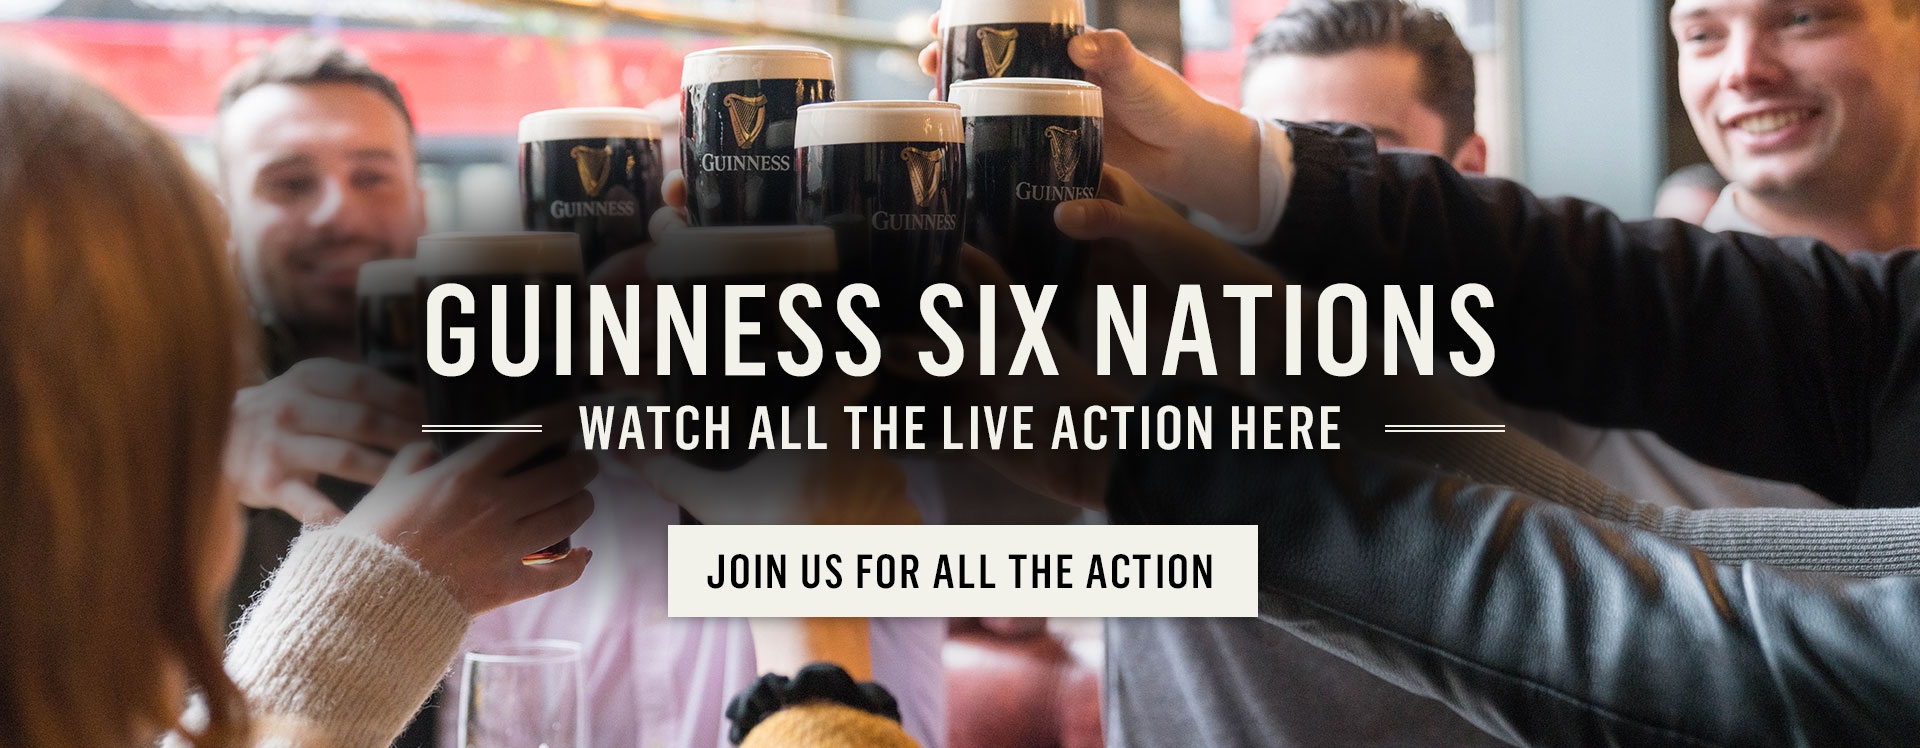 Six Nations at The Railway Tavern